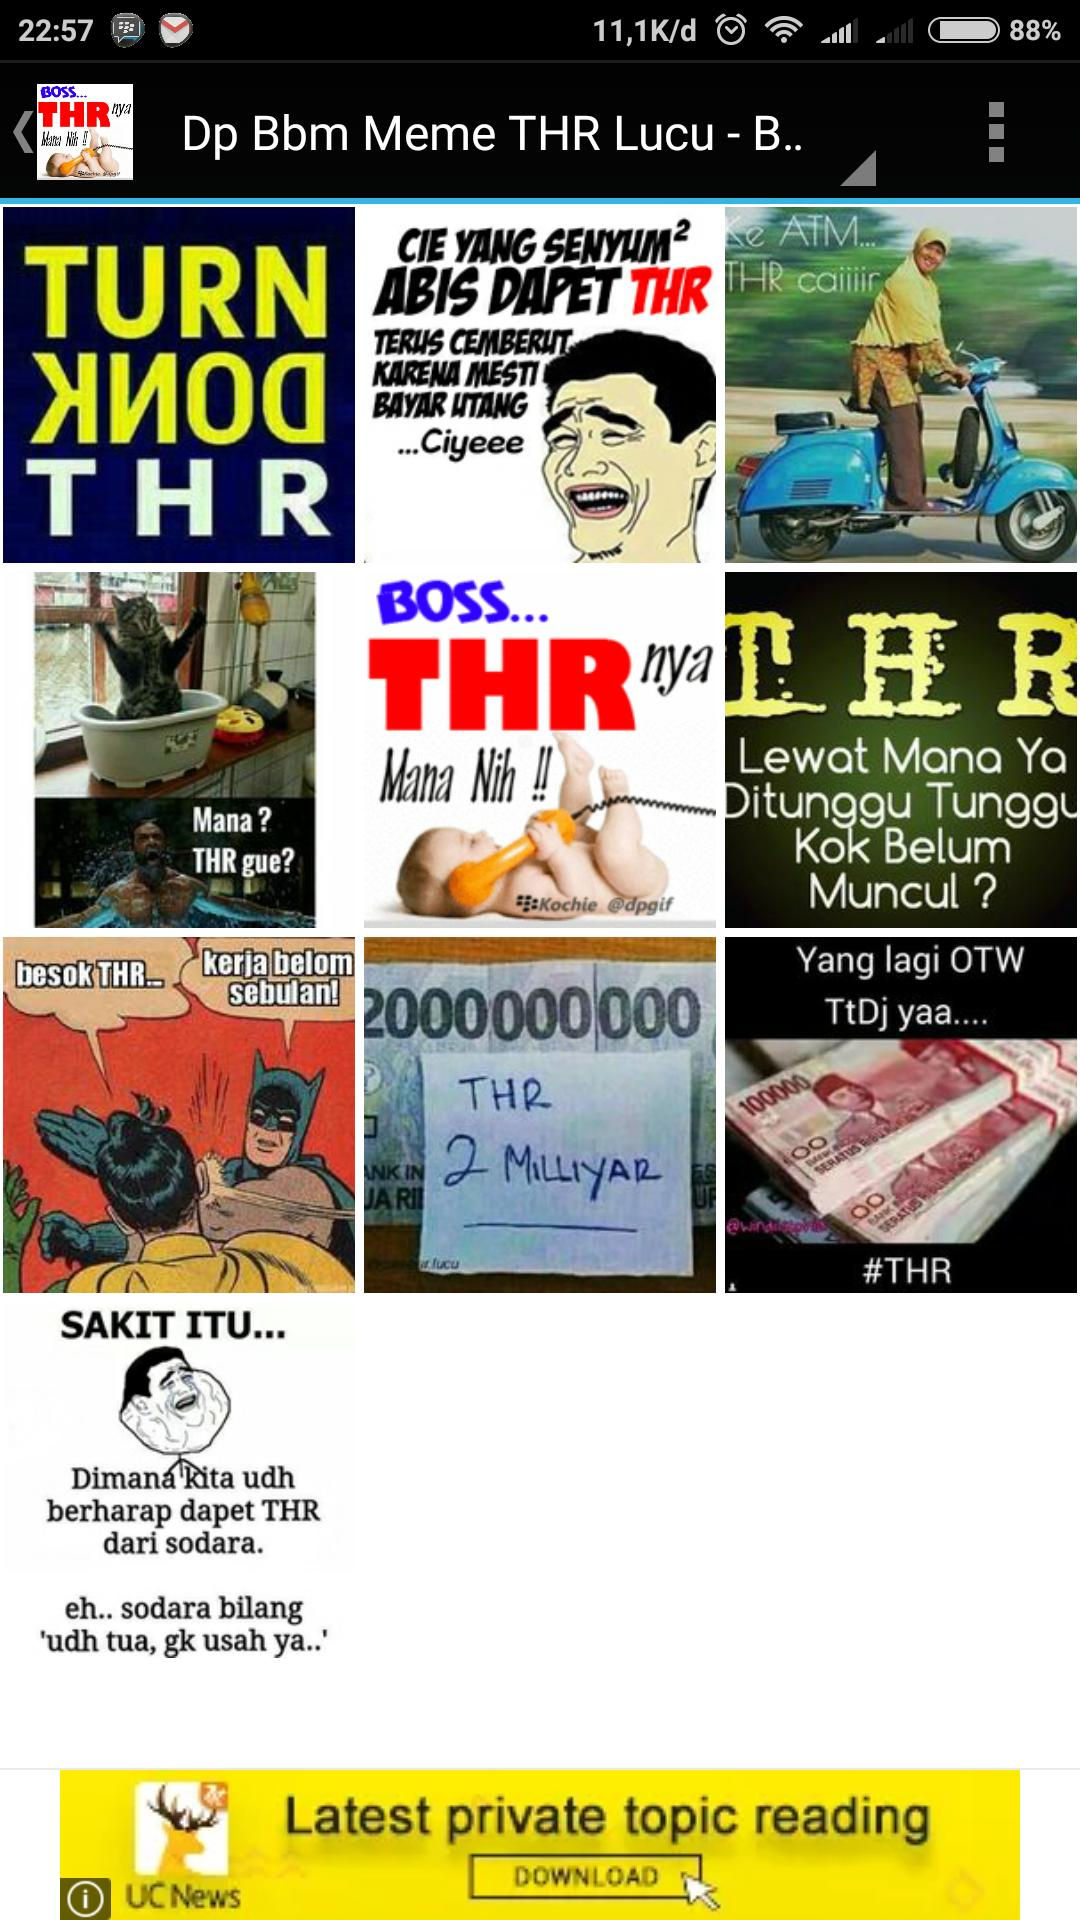 50 Dp Bbm Meme THR Lucu For Android APK Download